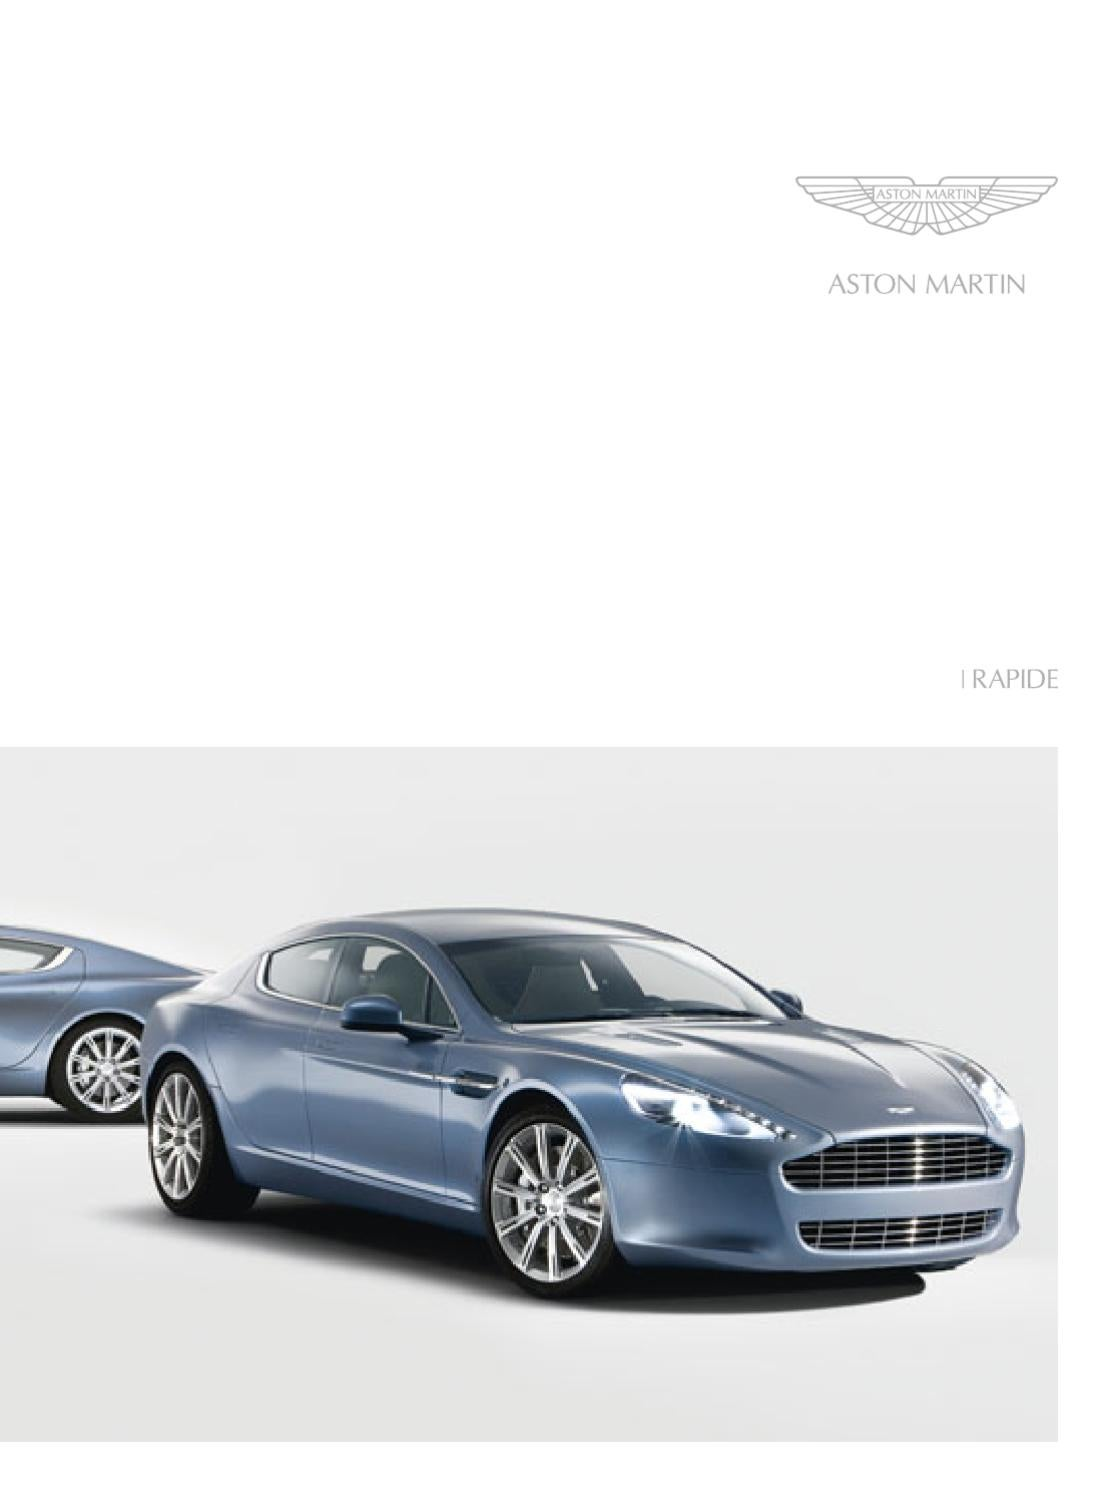 2011 aston martin rapide brochure eng by ted sluymer issuu. Black Bedroom Furniture Sets. Home Design Ideas